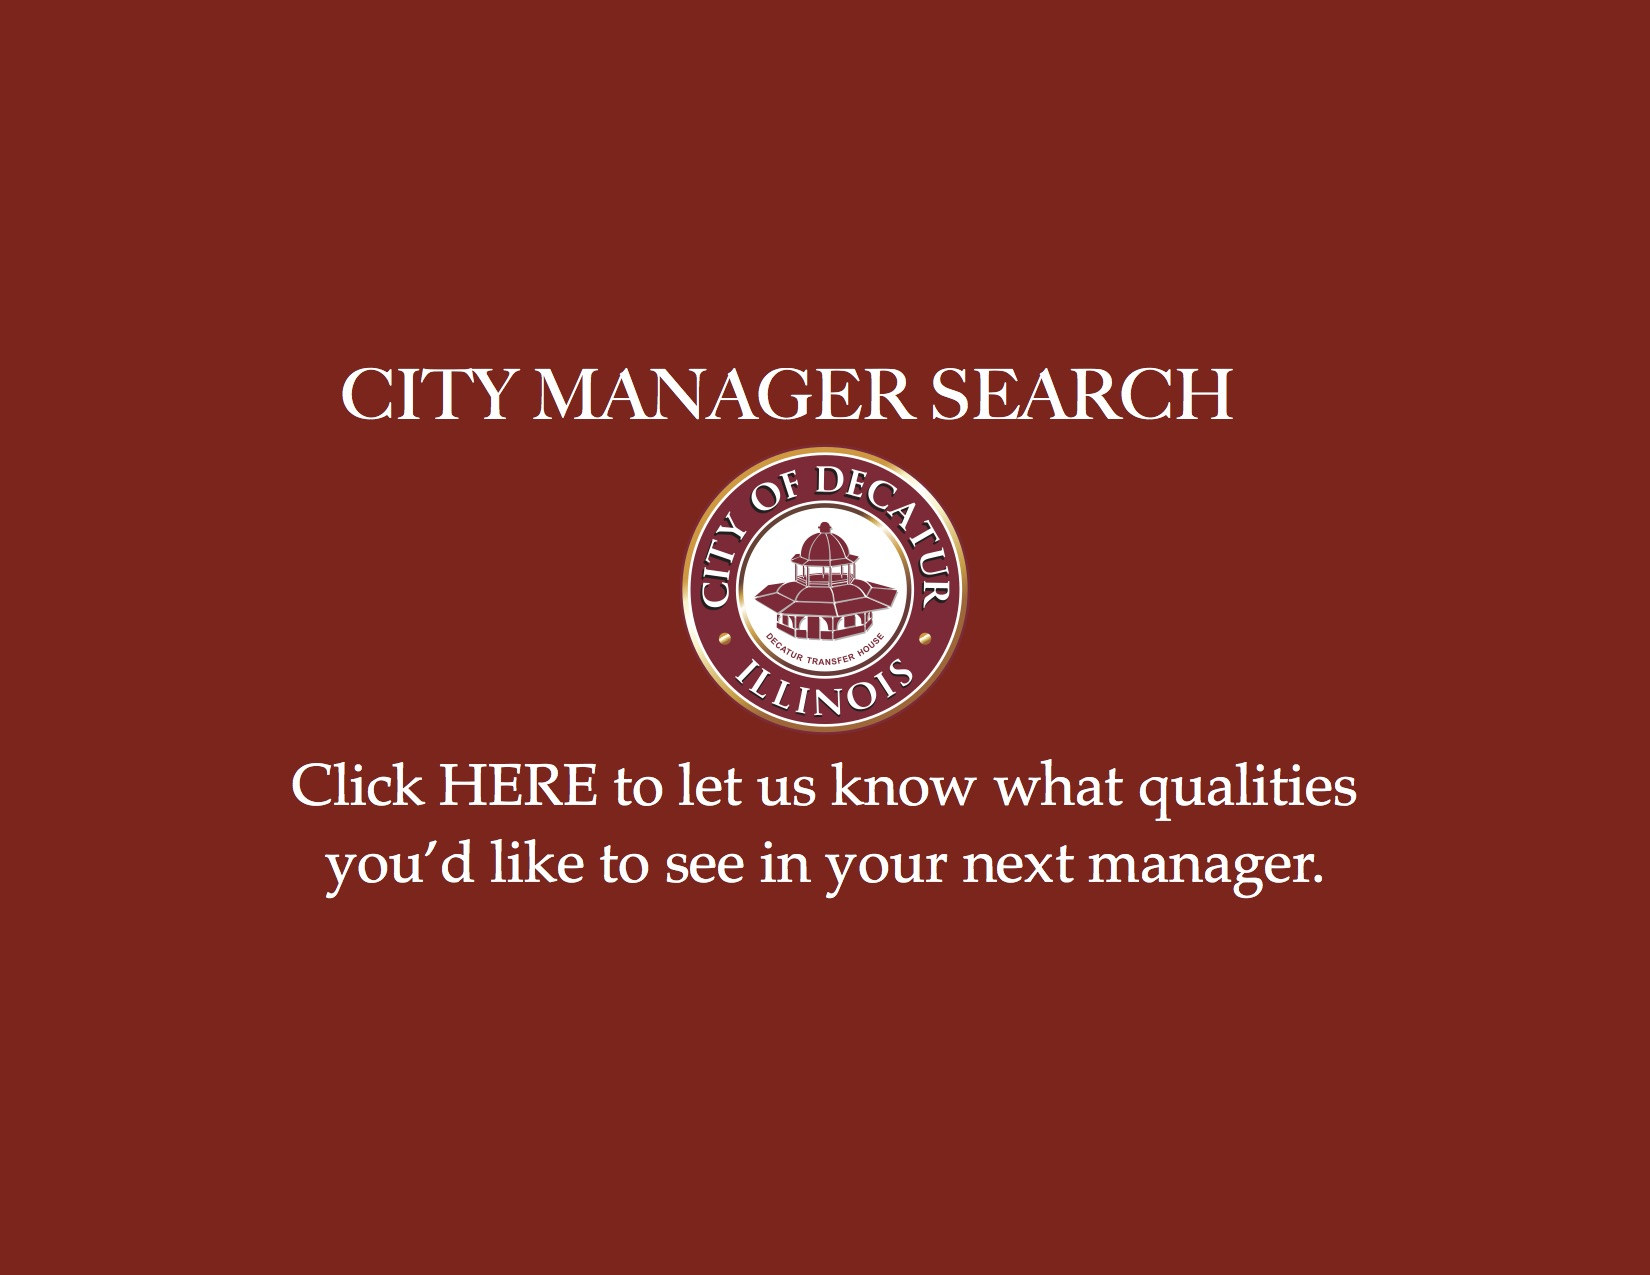 City Manager Search – Cover